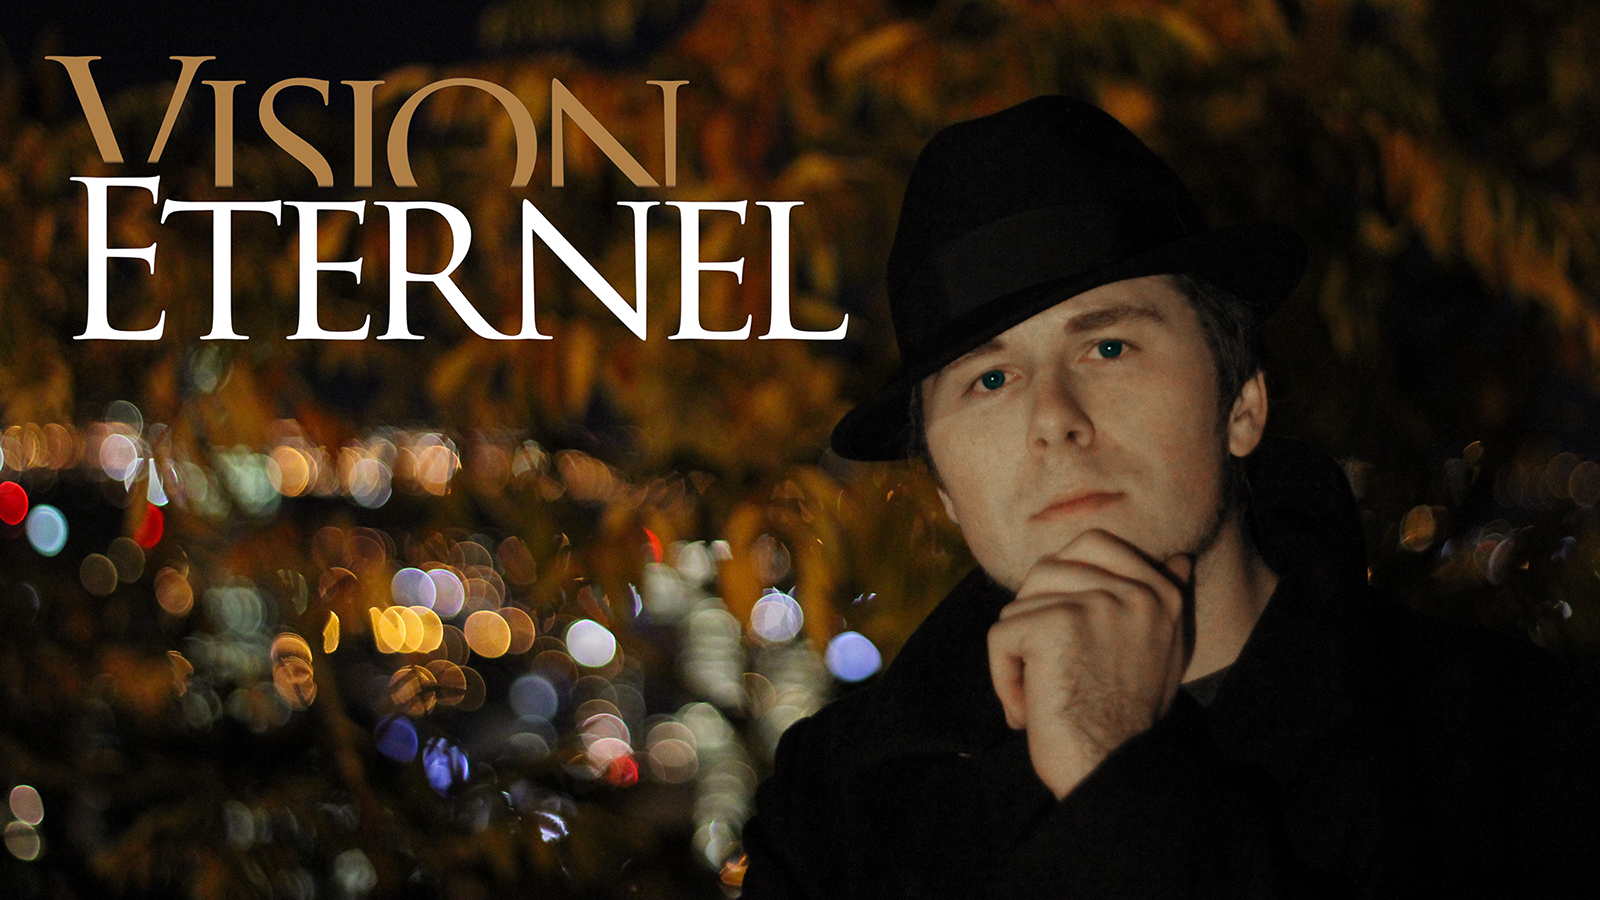 Vision Éternel Announces New EP